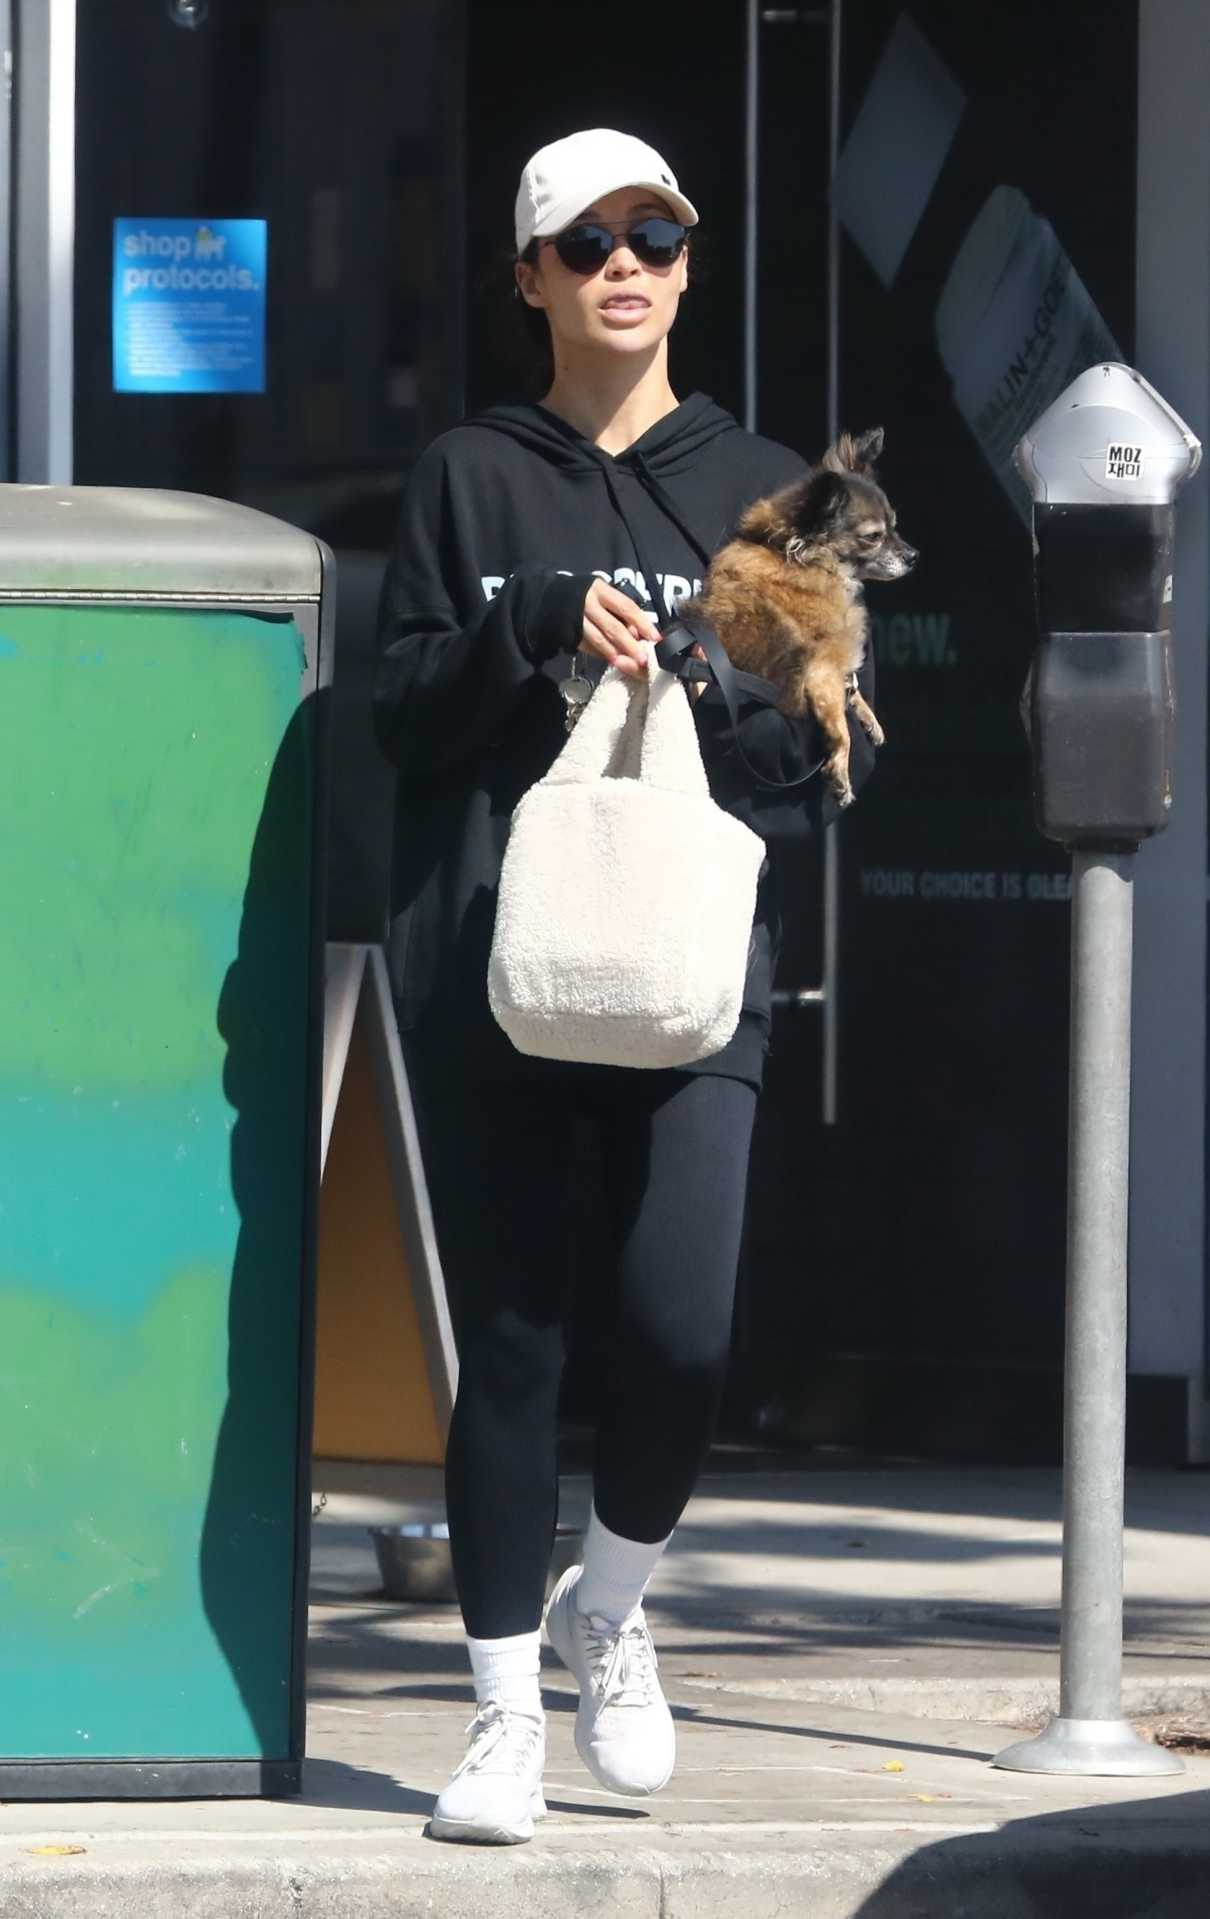 Cara Santana in a White Cap Was Seen with Her Dog in Los Angeles 06/03/2021